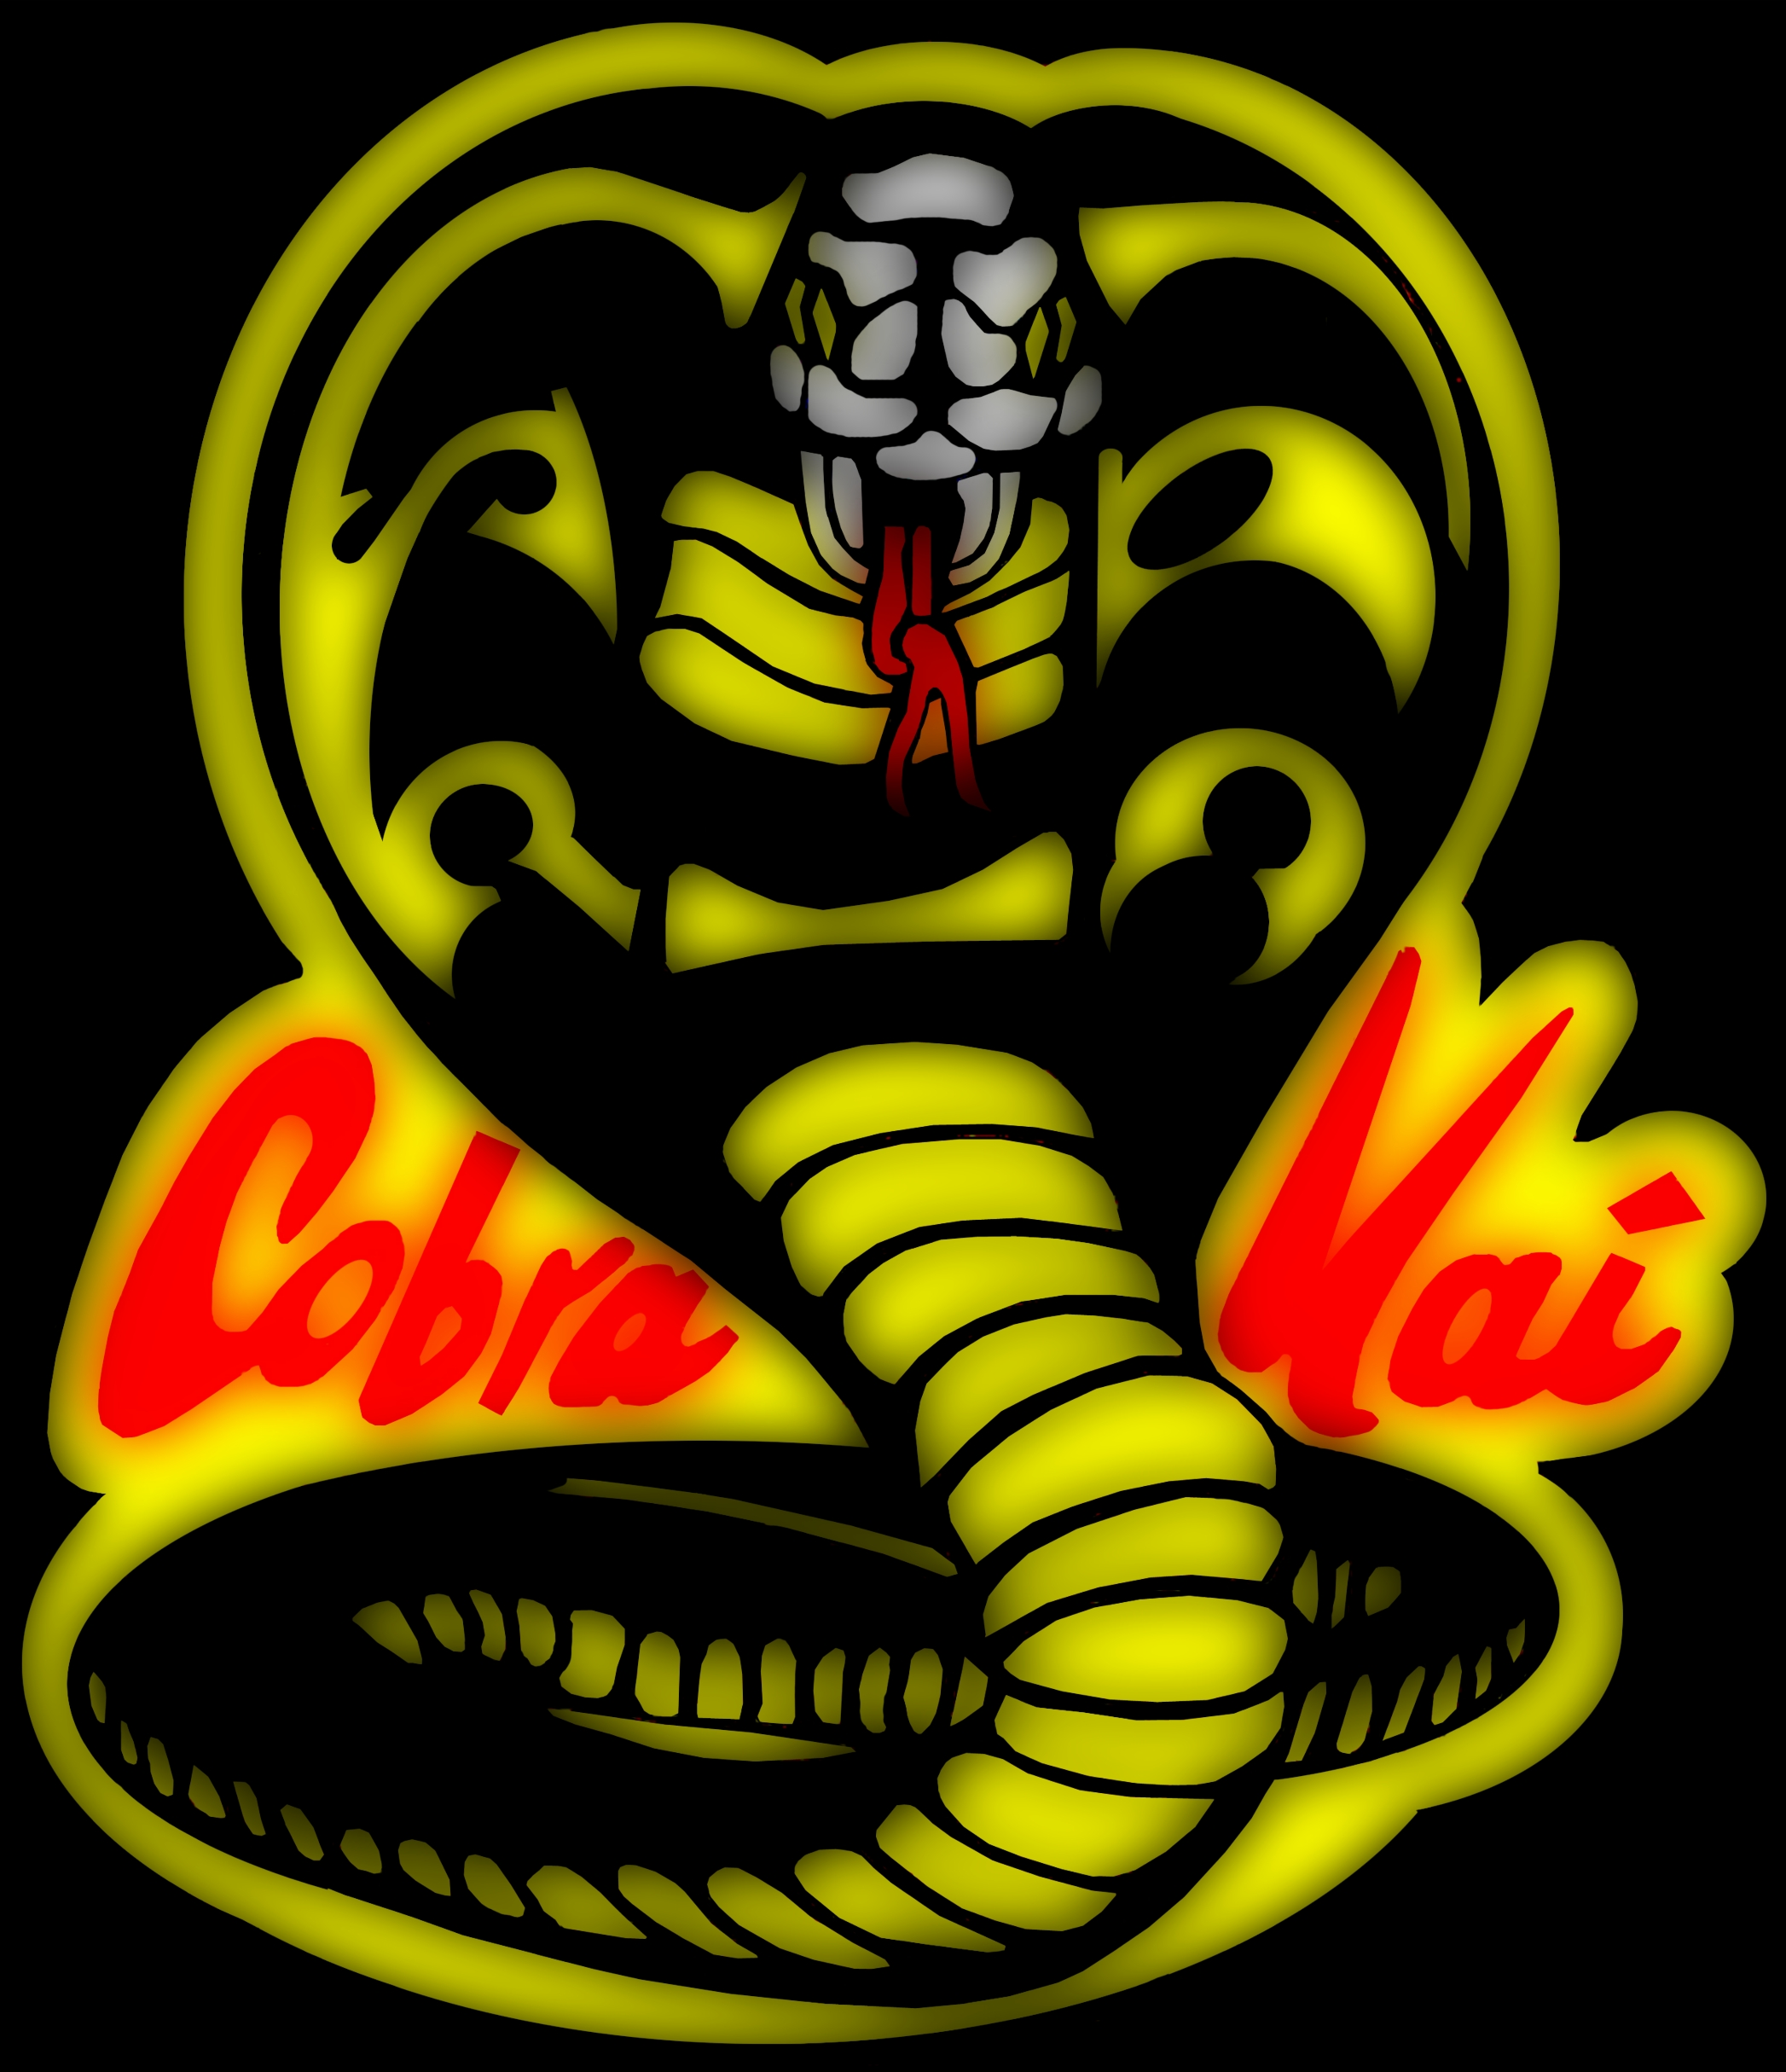 cobra kai - photo #10